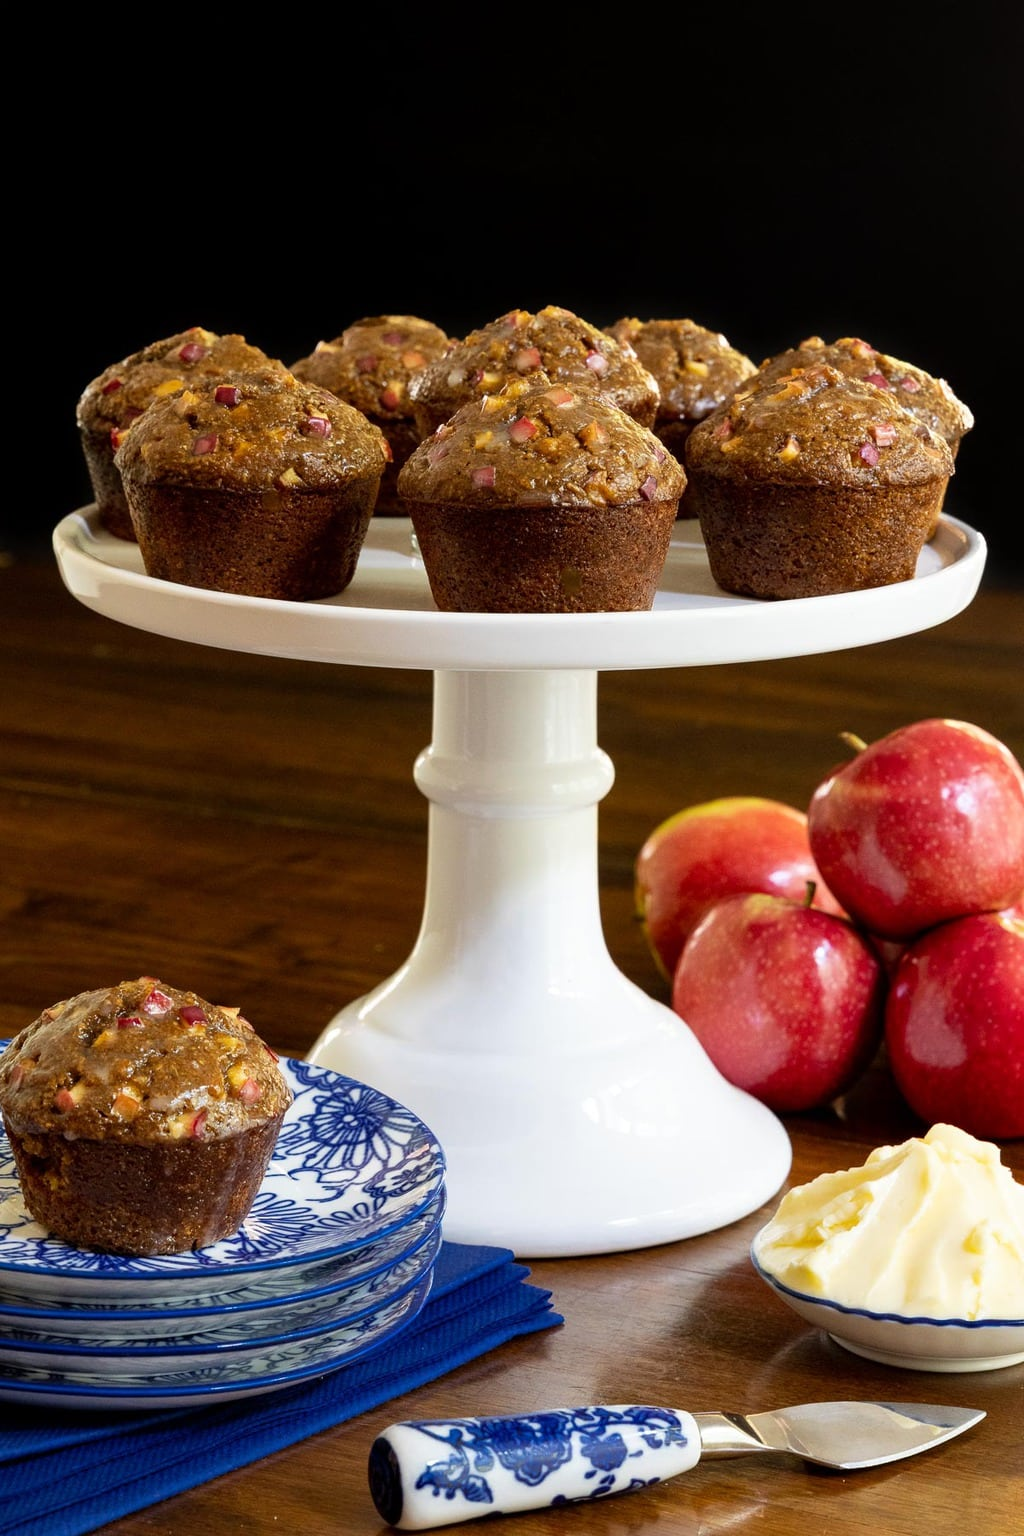 Horizontal photo of a batch of Honey-Glazed Apple Bran Muffins on a white pedestal plate surrounded by fresh apples and additional muffins.